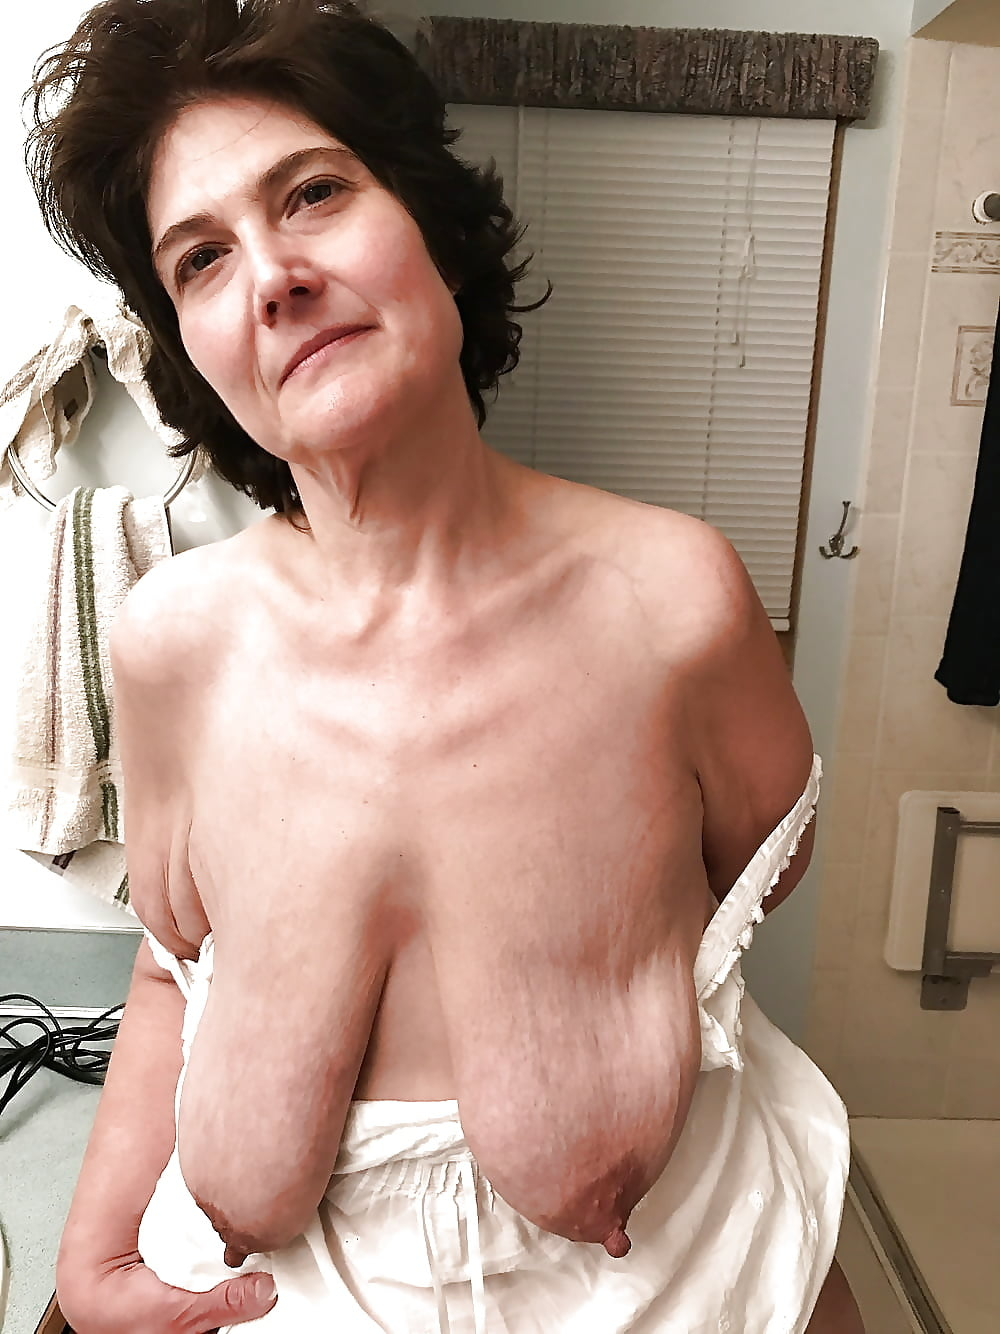 big-tits-long-wrinkly-tits-being-sucked-junior-girls